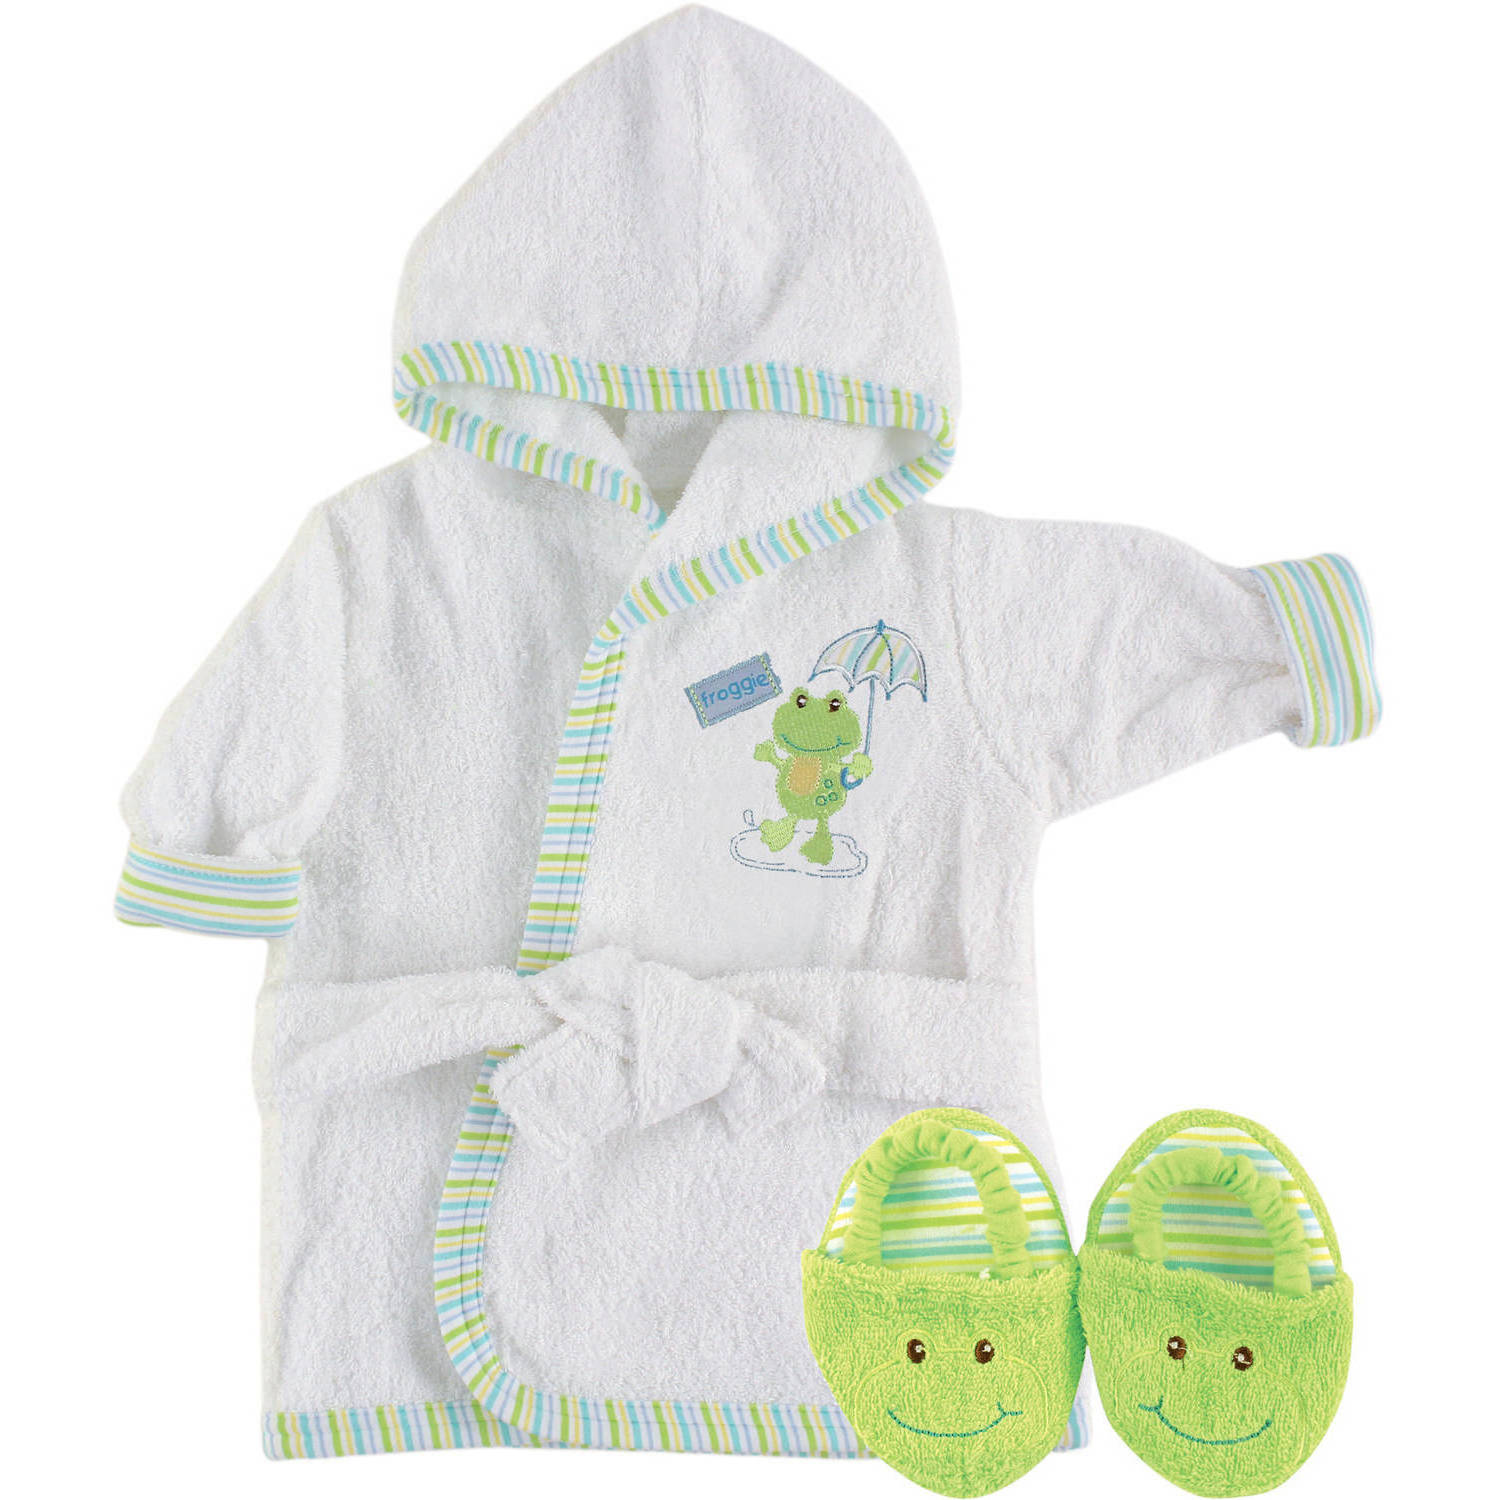 Luvable Friends Newborn Baby Neutral Unisex Bath Robe and Slippers Set, Size/Age 0-9 Months